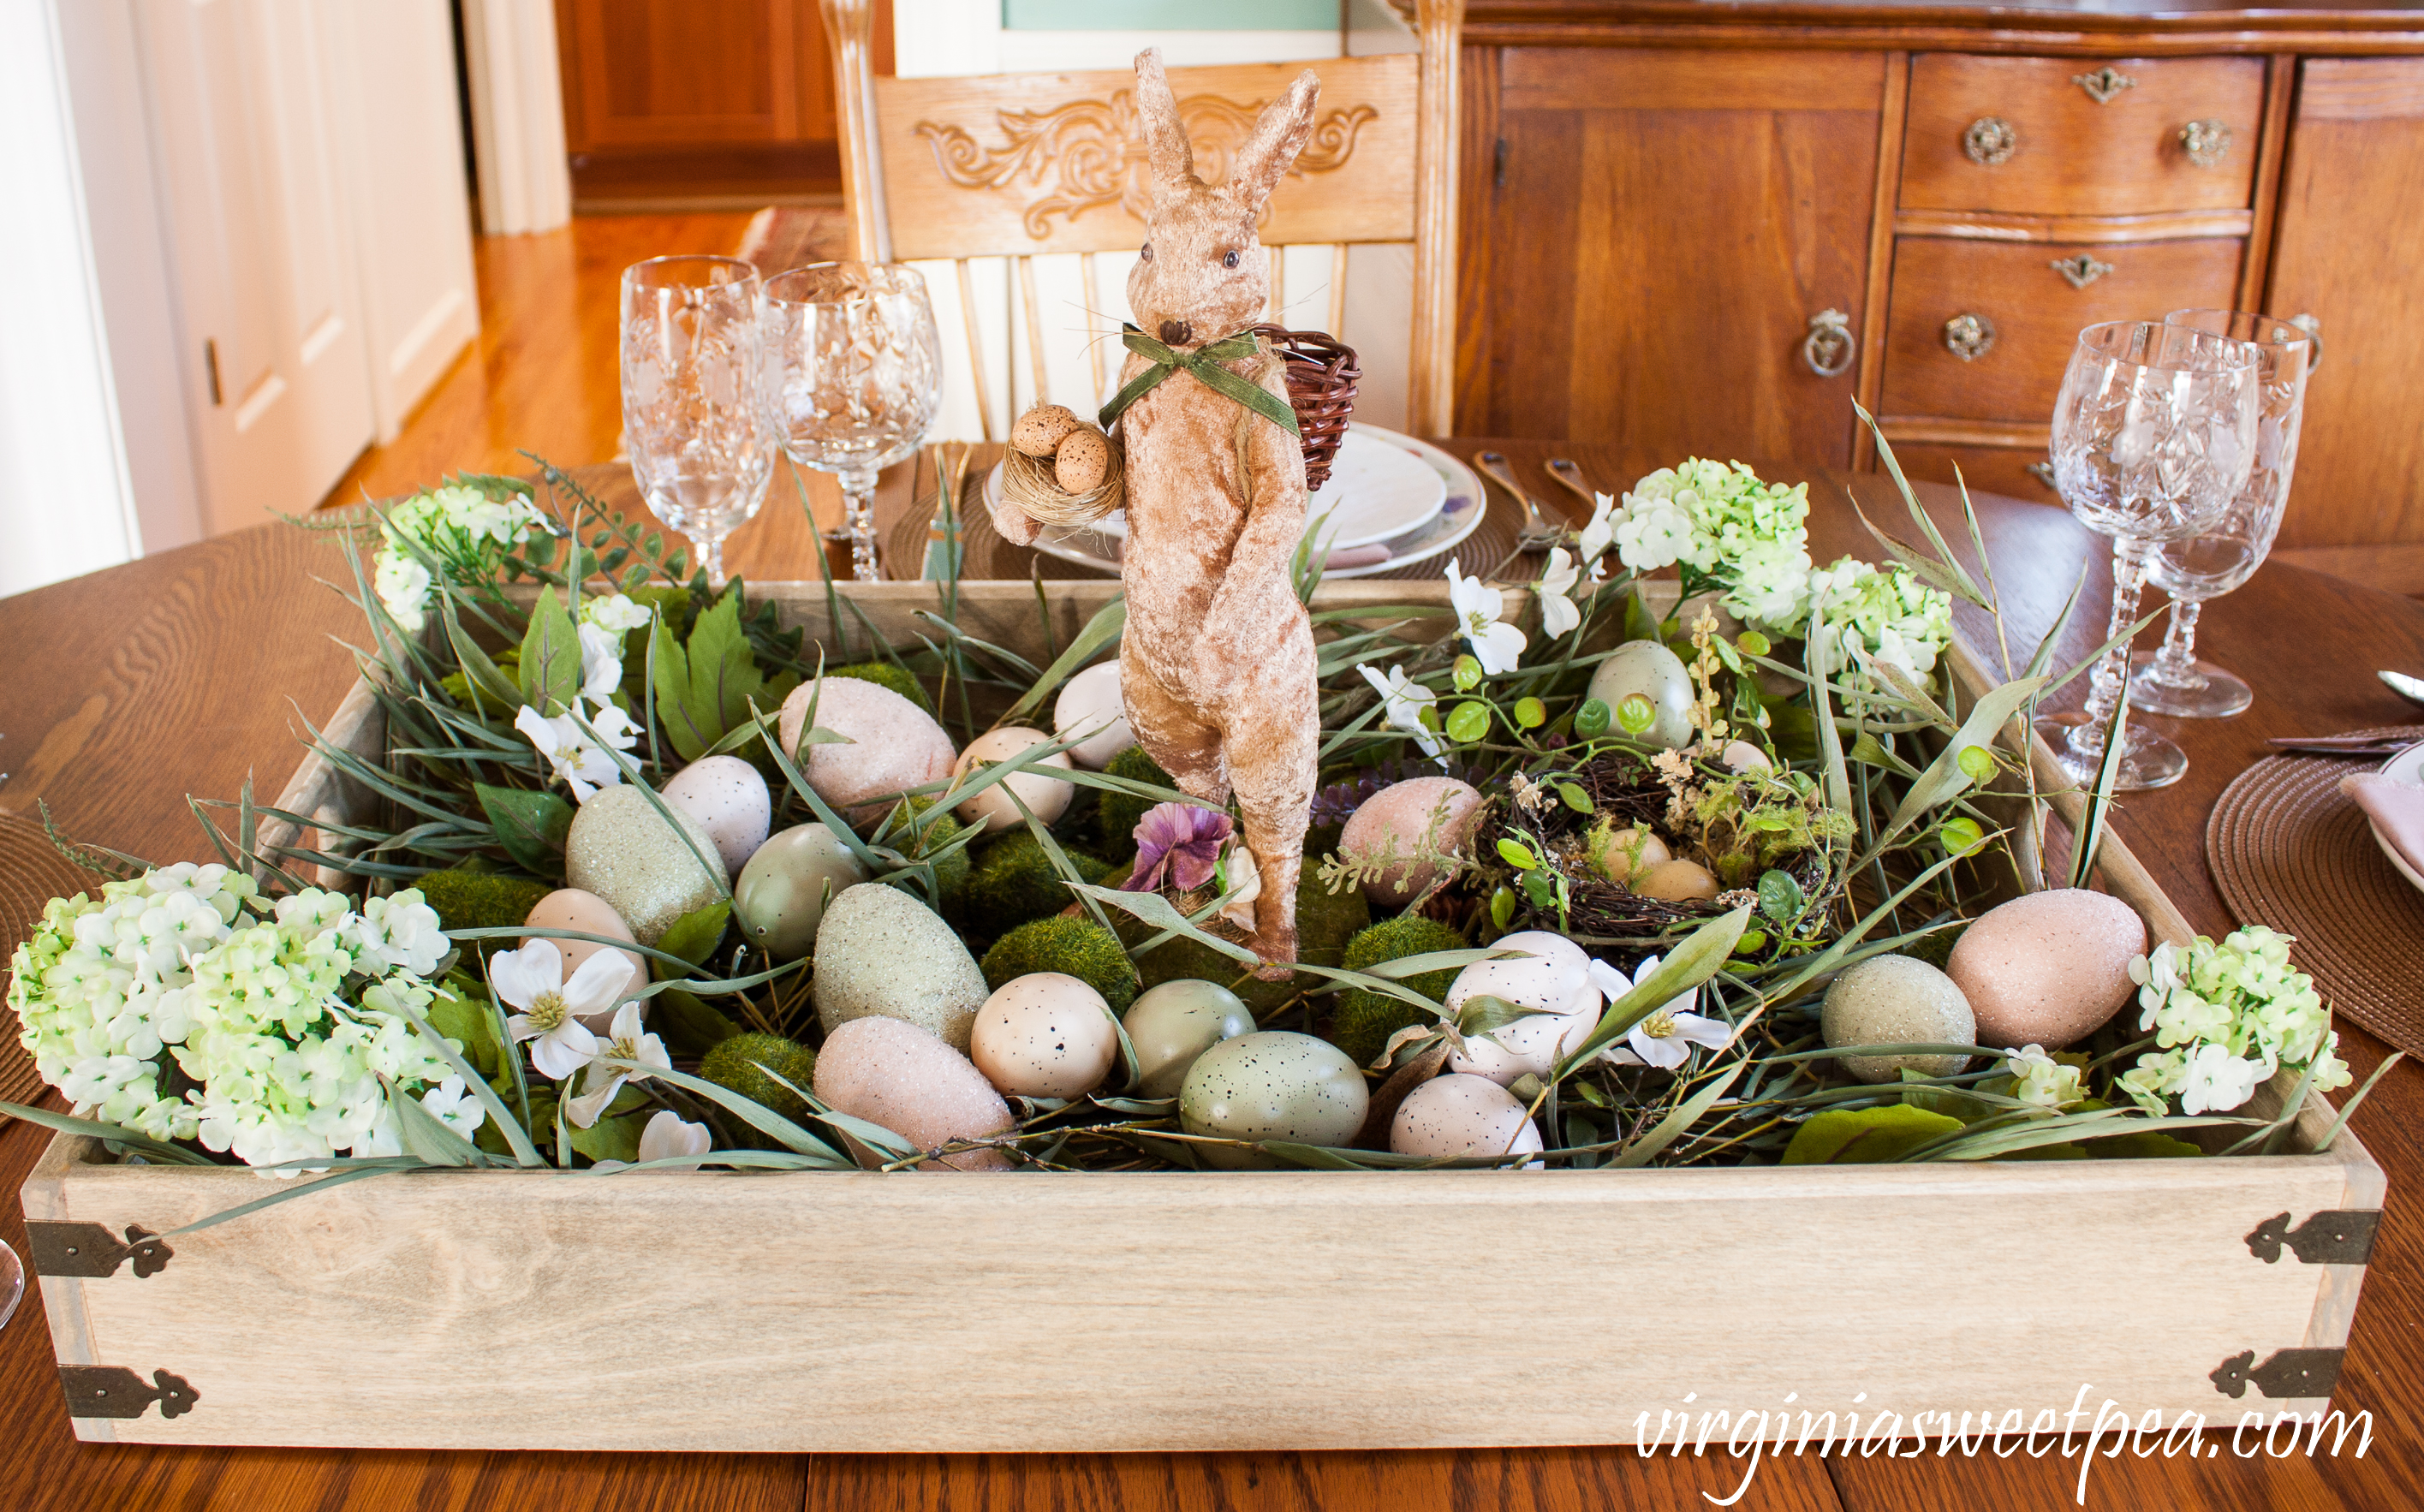 Farmhouse Style Easter Centerpiece - Learn how to make this for your home. #easter #eastercenterpiece #eastertablescape #farmhouse #farmhousecenterpiece #farmhousetable #eastertable